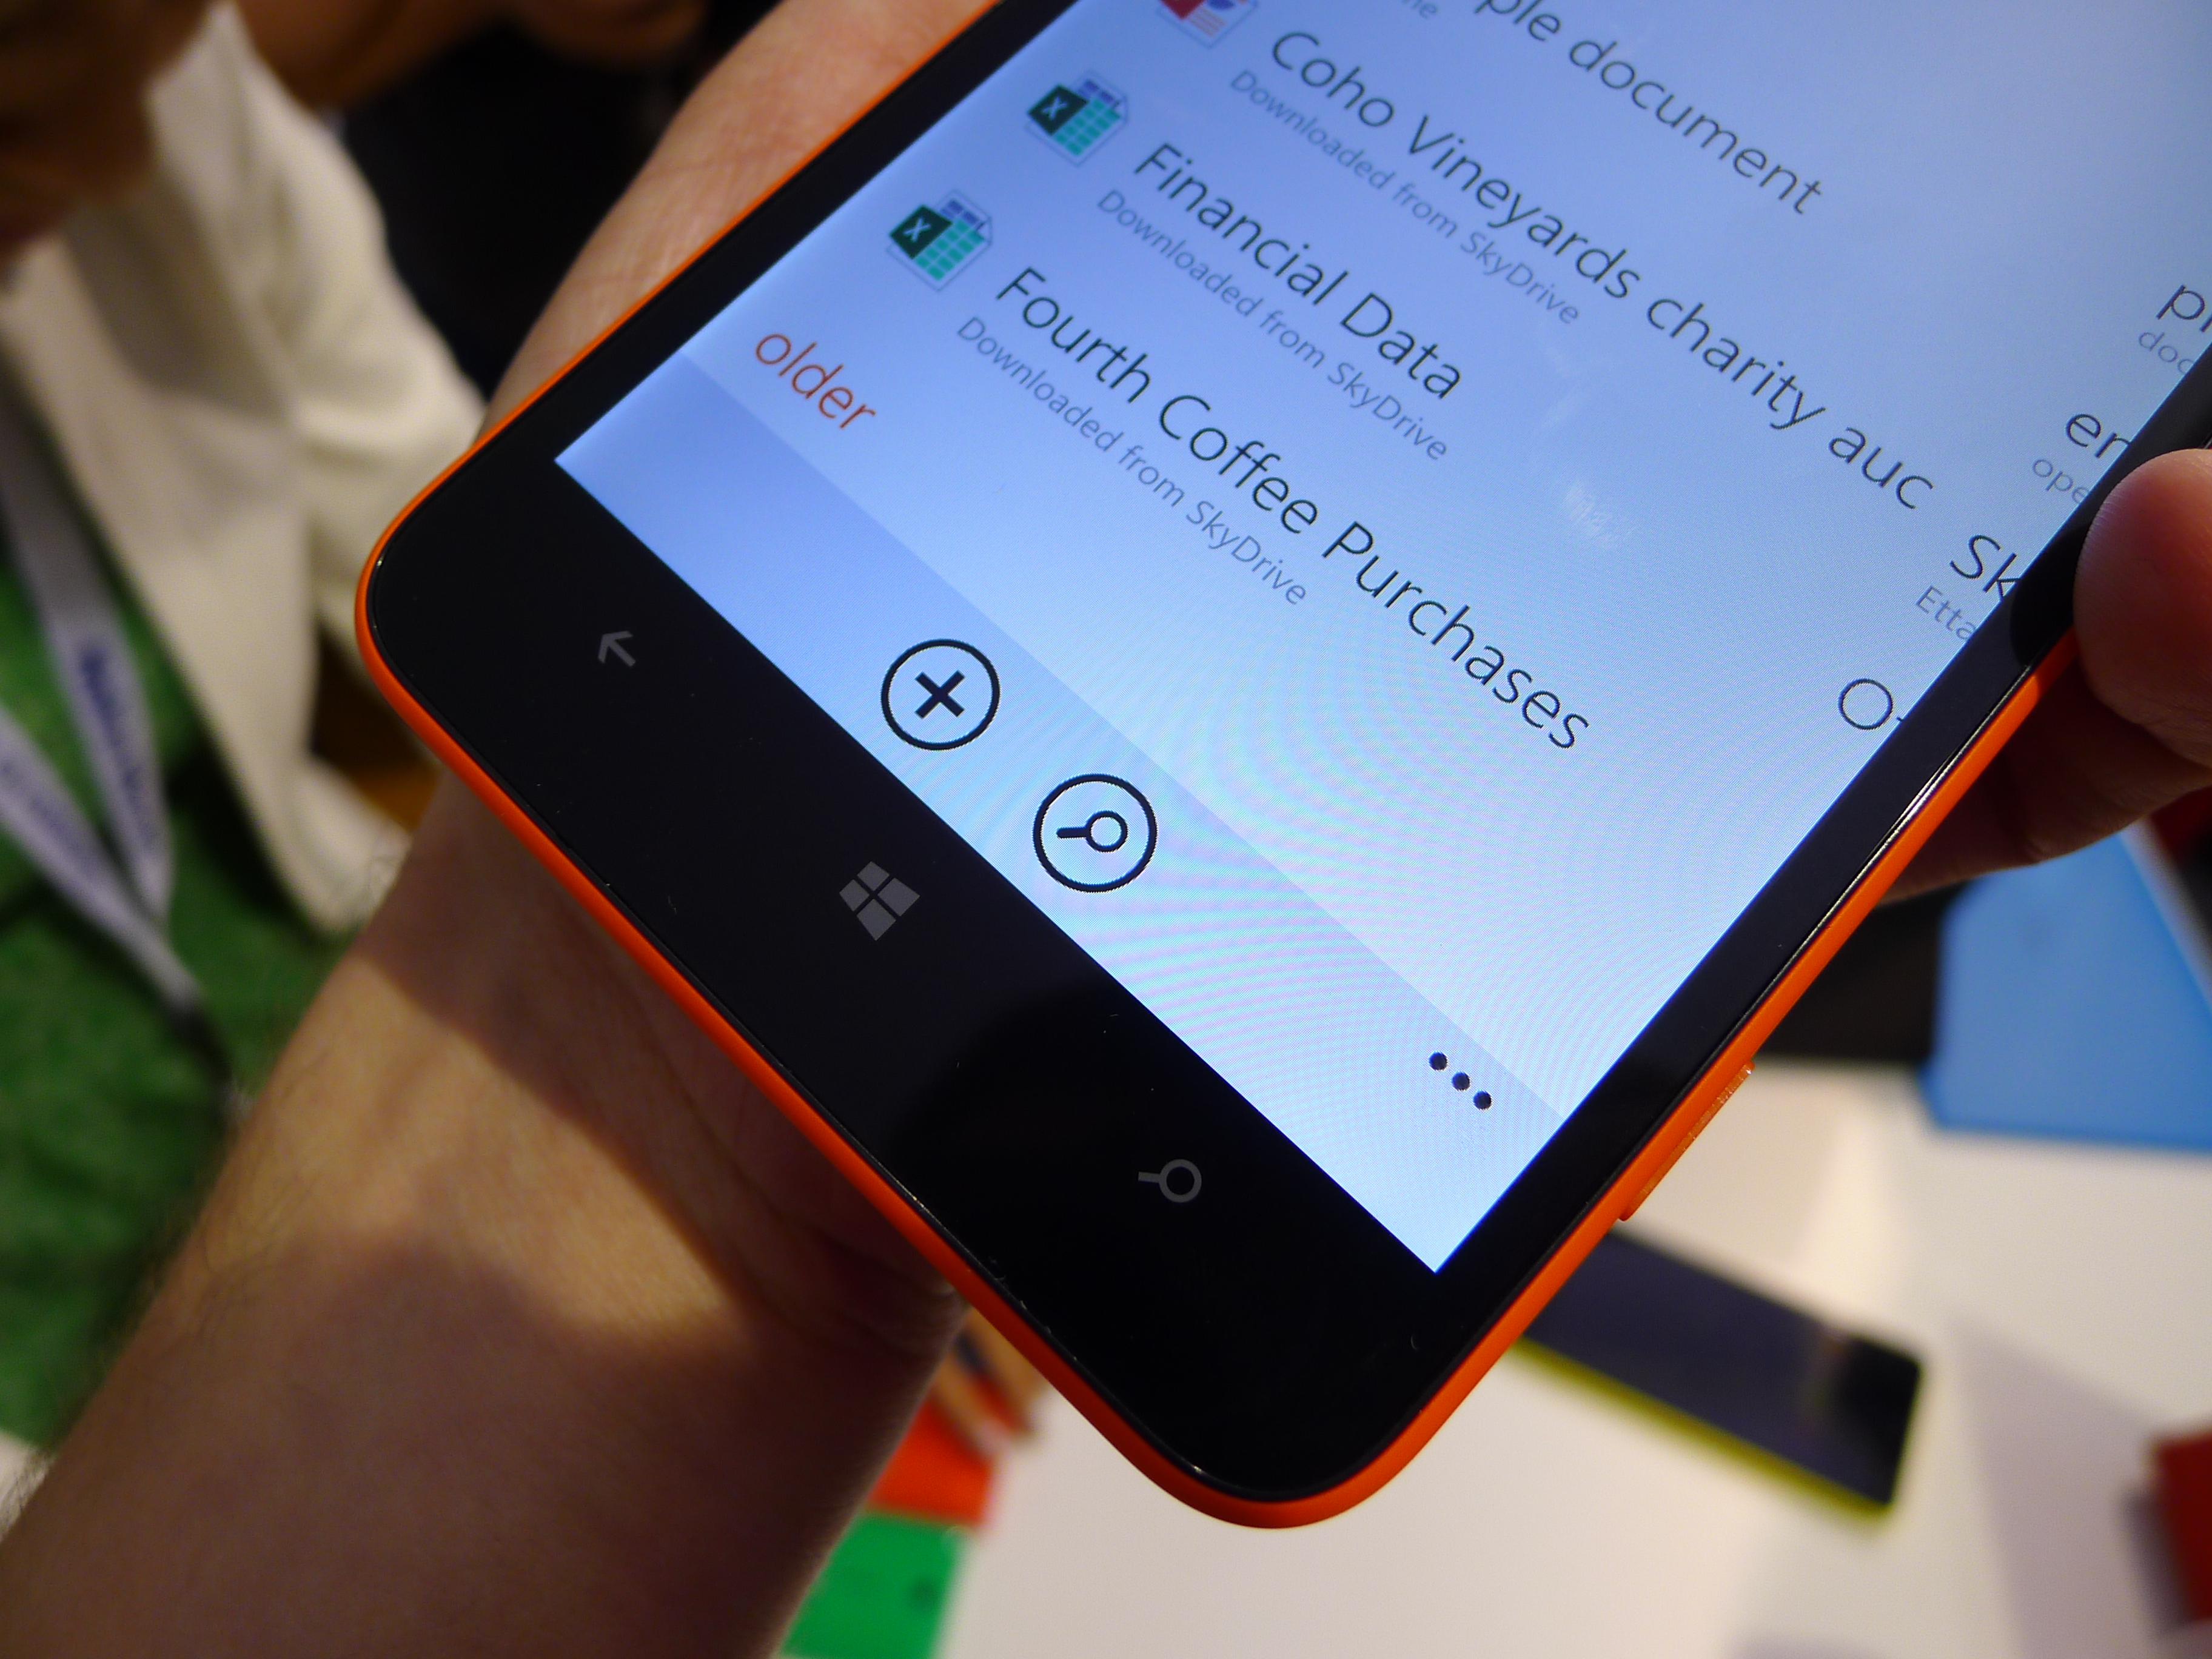 P1040494 Nokia Lumia 1320 hands on: How does this 6, 720p smartphone stack up against the Lumia 1520?